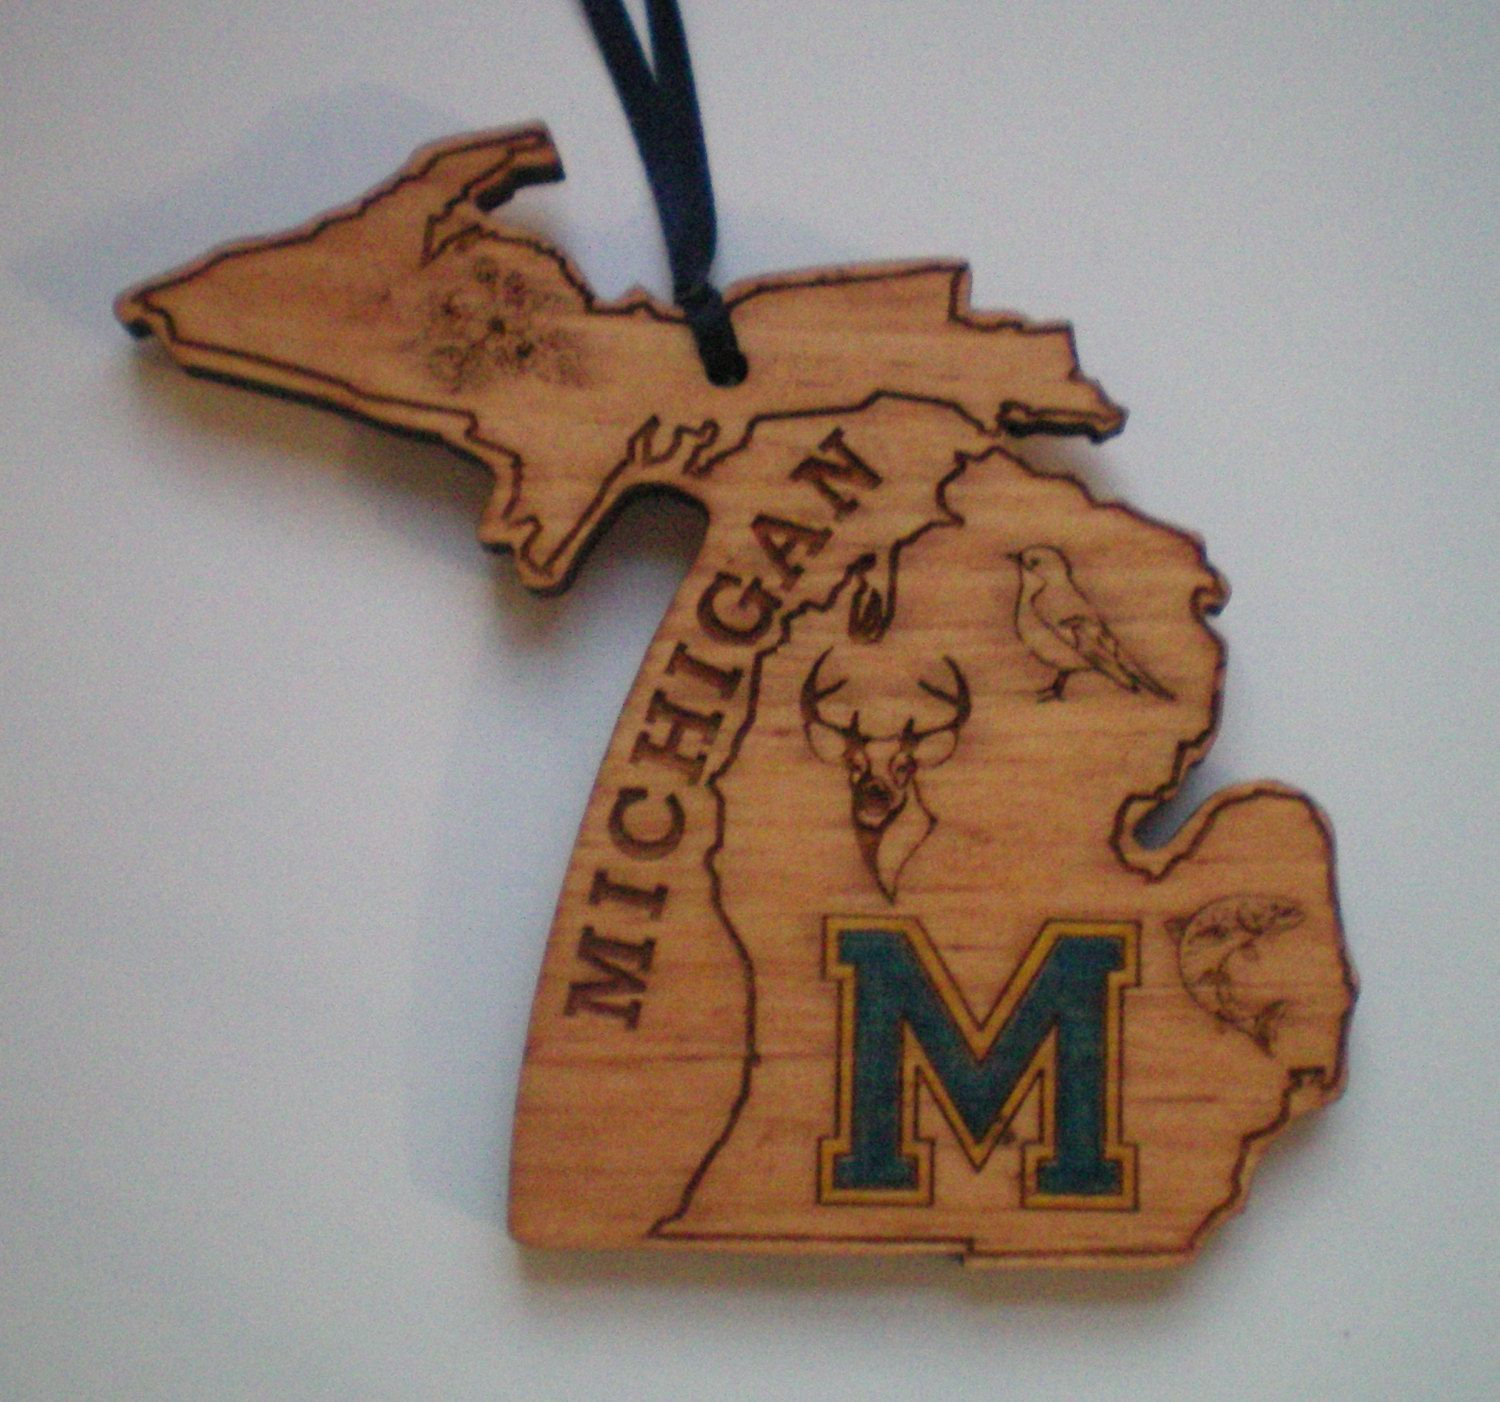 University of michigan christmas ornaments - University Of Michigan Christmas Ornament By Infinityengraving On Etsy